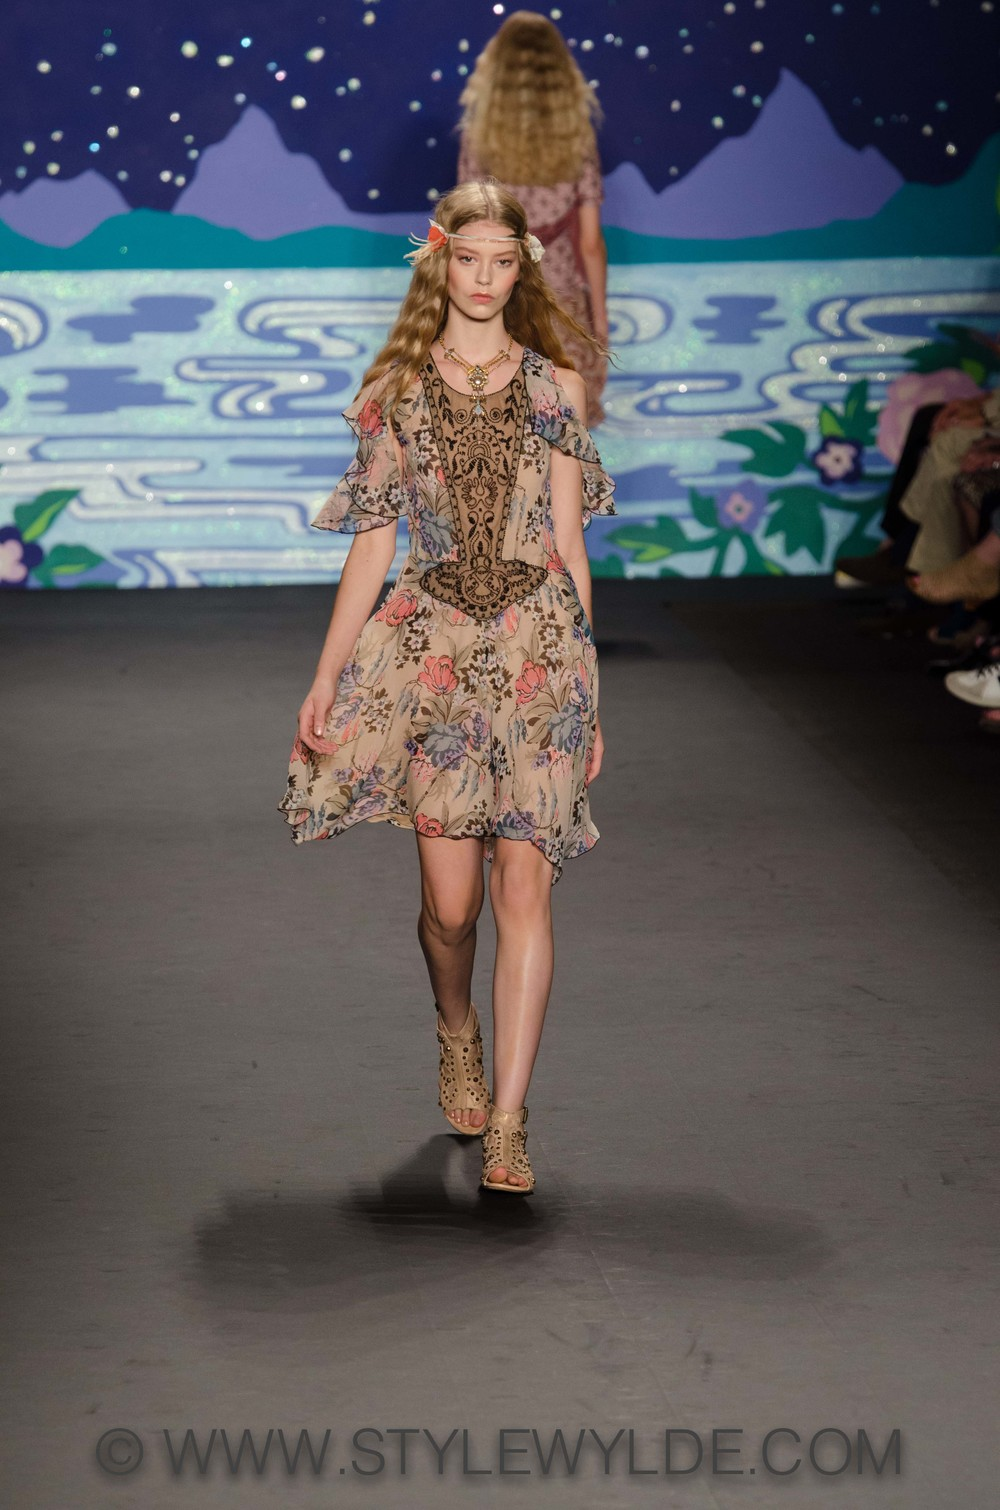 STYLEWYLDE_ANNASUI_SS2014_GALLERY_IMAGES (38 of 49).jpg